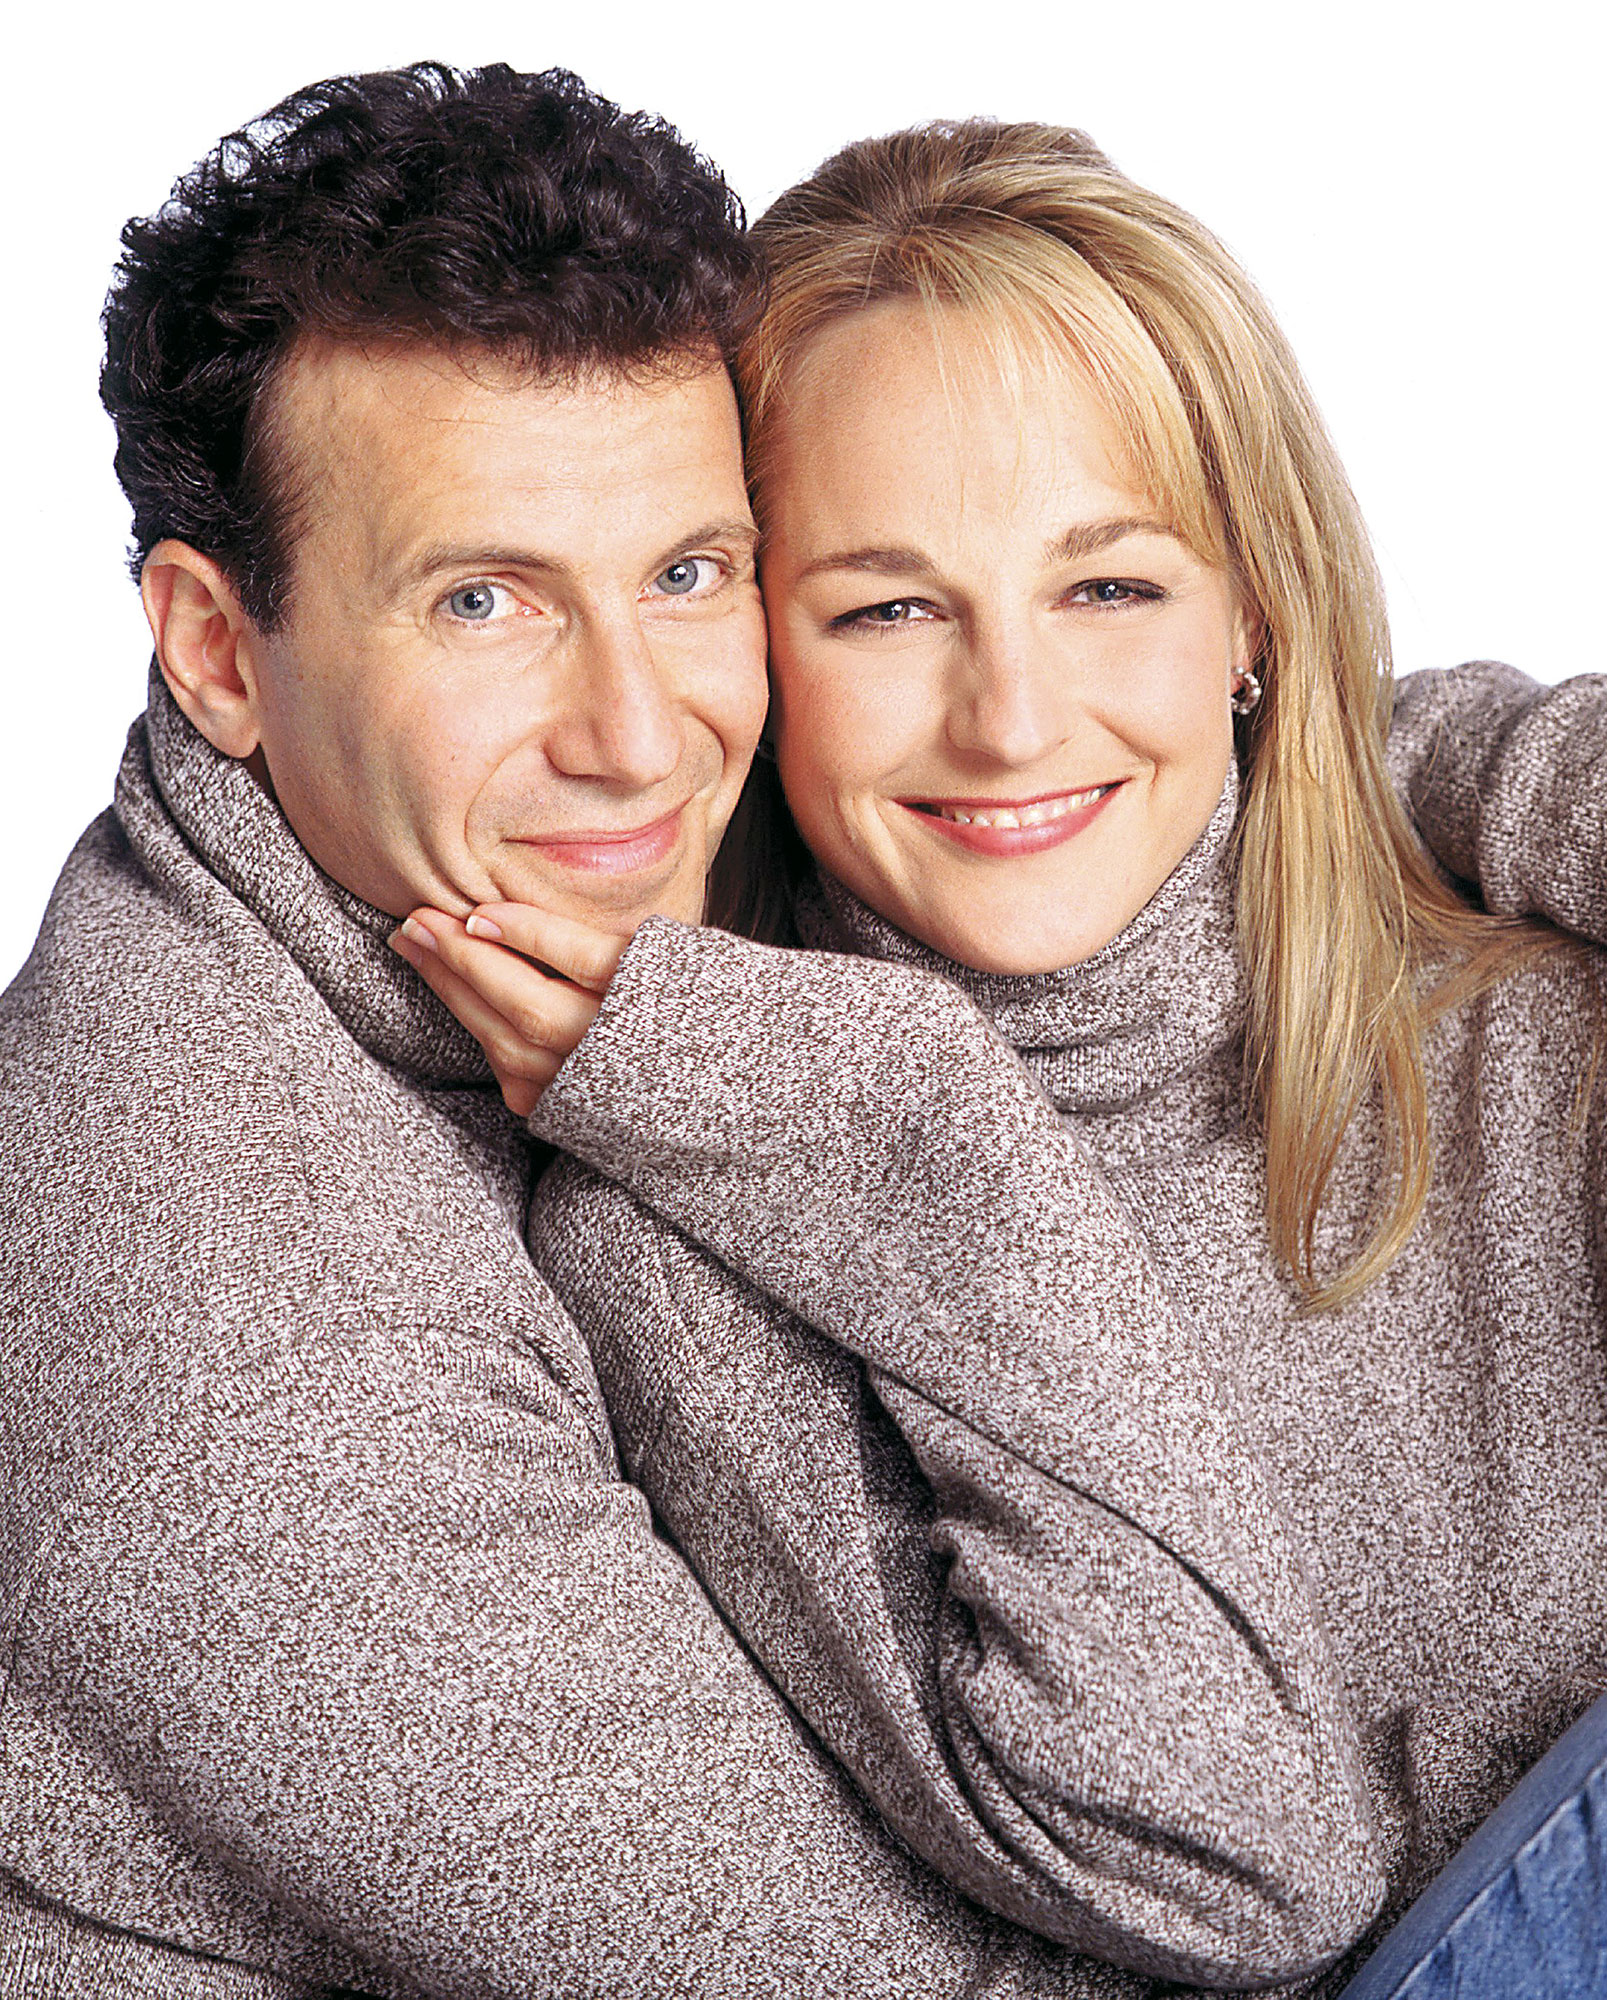 Best TV Couples Mad About You Paul Reiser Helen Hunt - Show: Mad About You Actors: Paul Reiser and Helen Hunt Network: NBC Seasons: 7